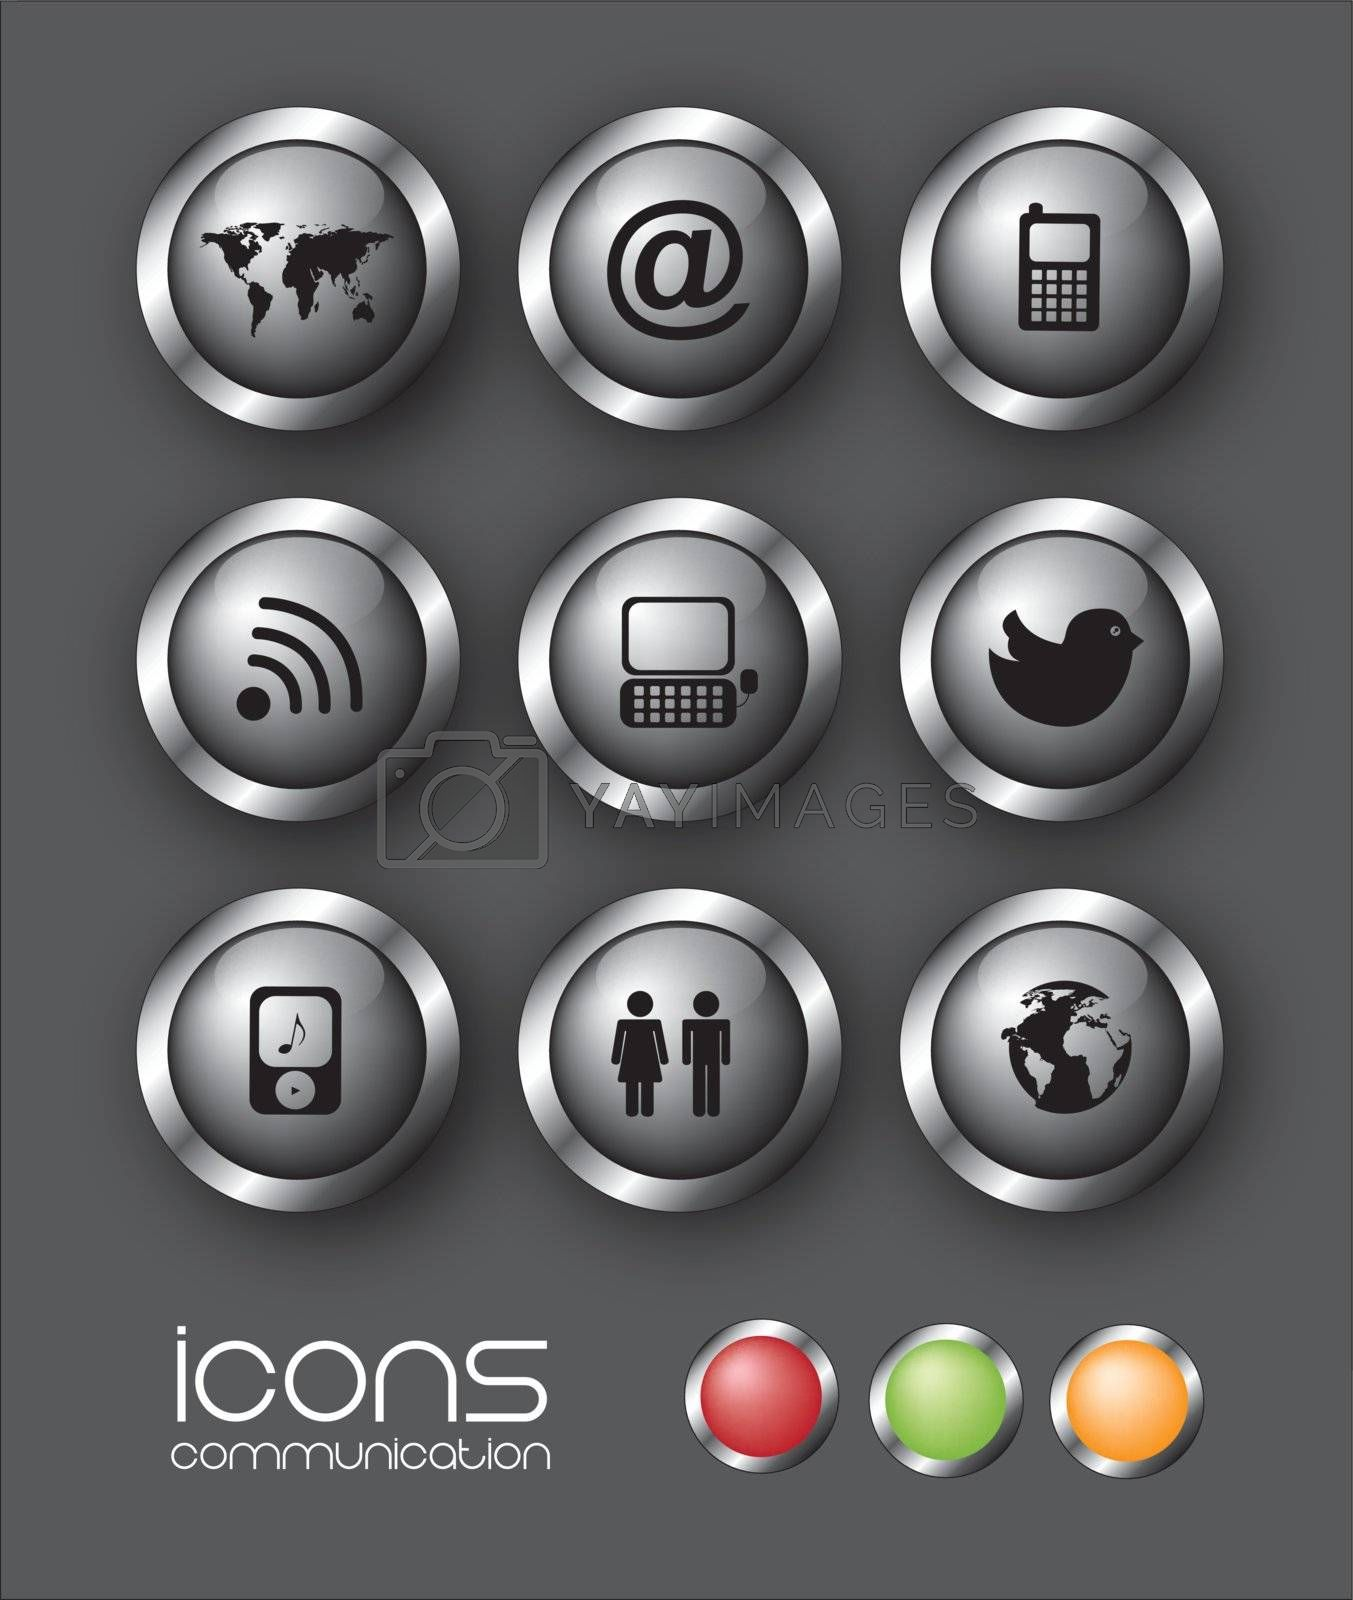 Communication icons over black background vector illustration